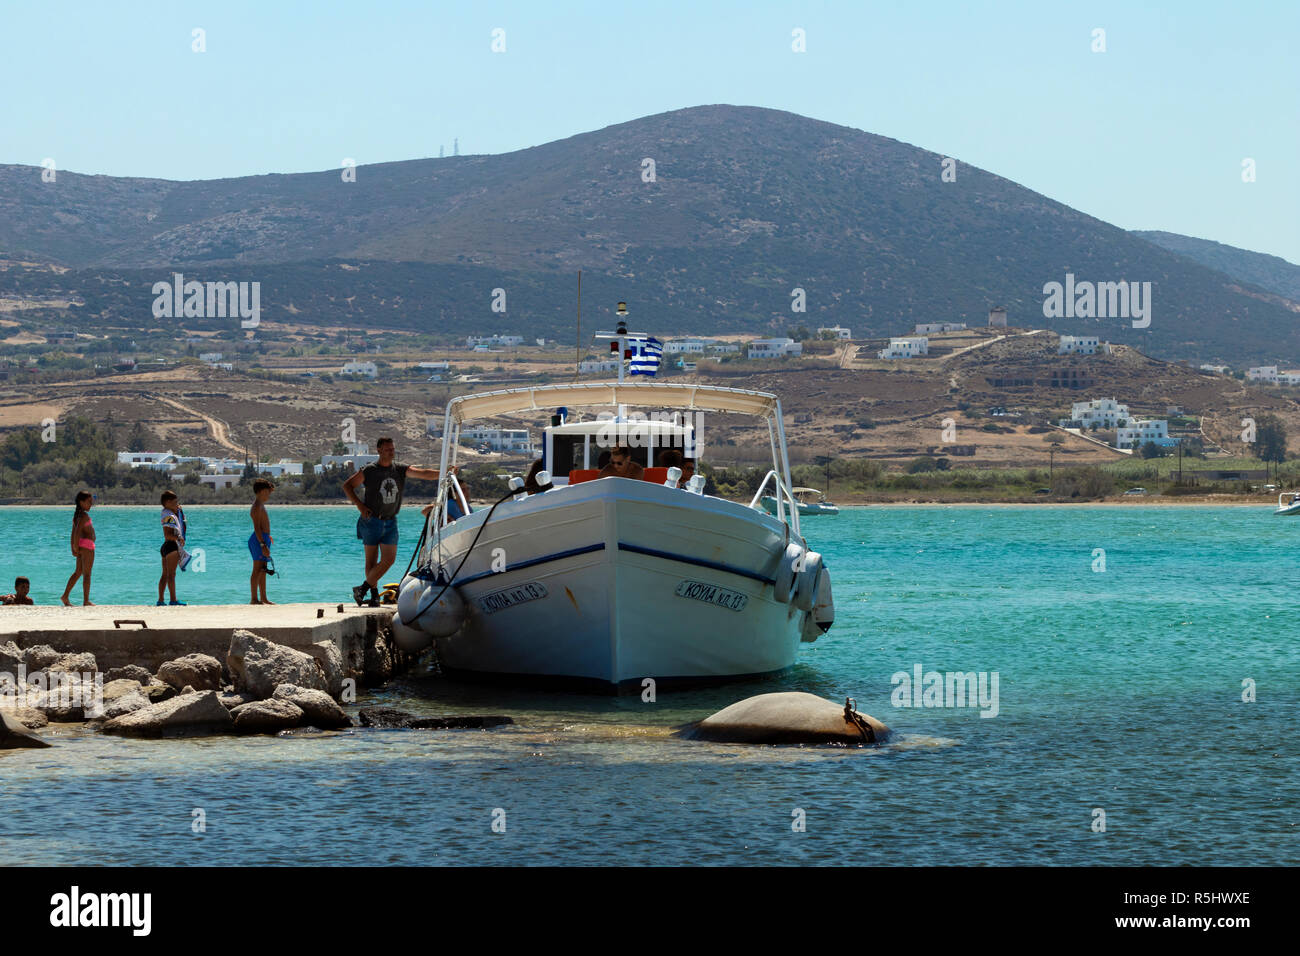 PAROS, GREECE - AUGUST 30, 2018: tourists are waiting to board a water taxi at an exclusive beach near Parikia on a hot sunny day. - Stock Image